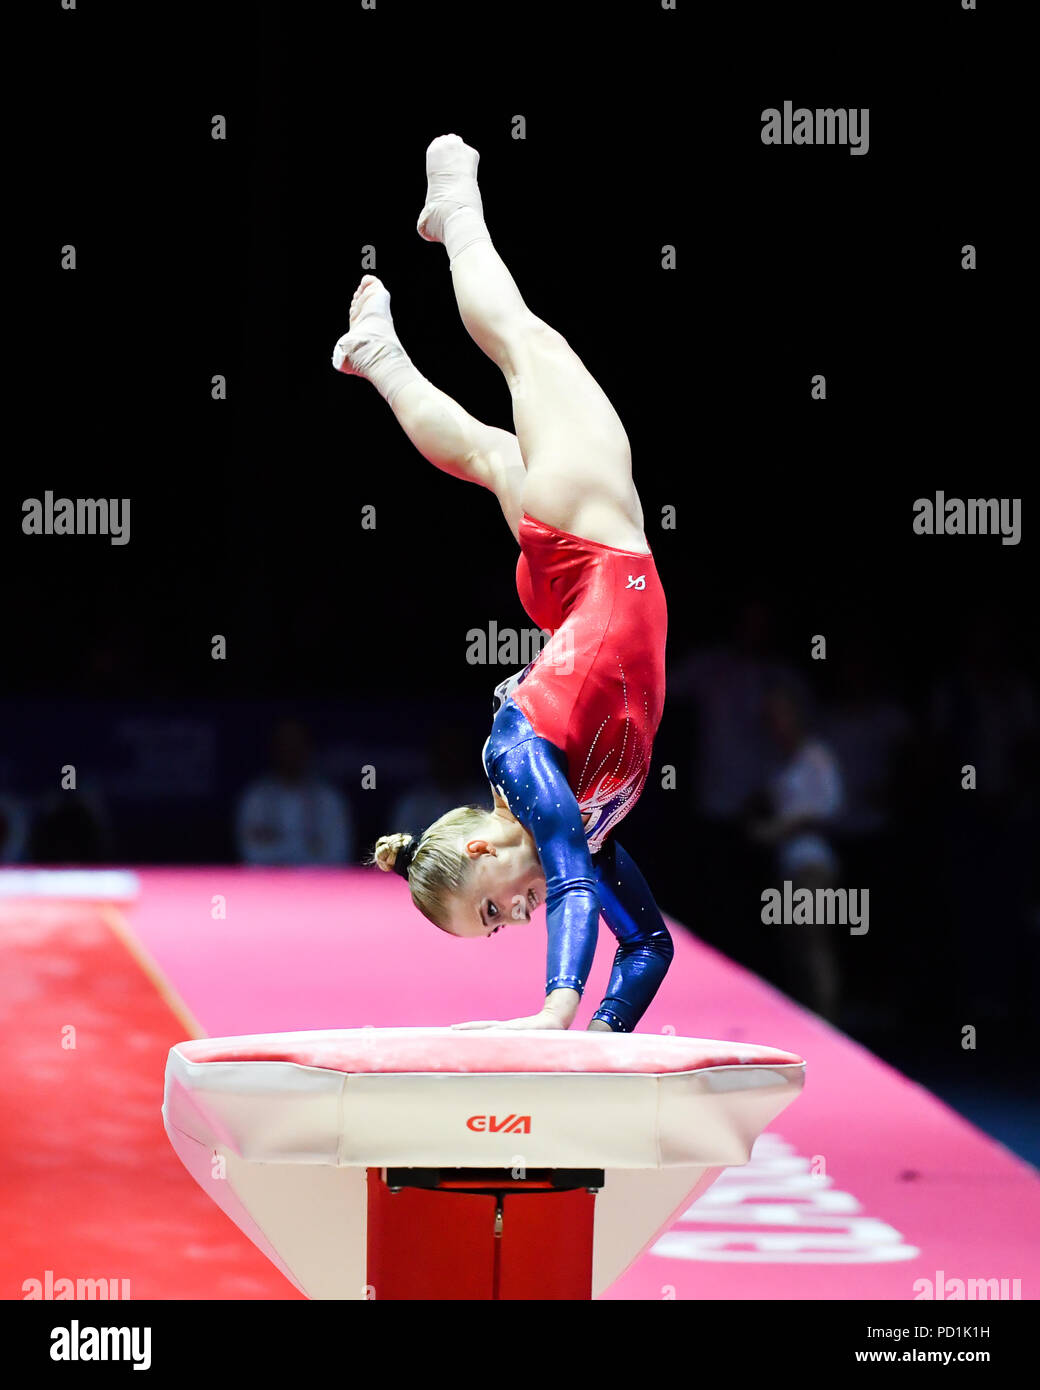 AKHAIMOVA Liliia (RUS) competes on the Vault in Women's Artistic Gymnastics Apparatus  Finals during the European Championships Glasgow 2018 at The SSE Hydro on Sunday, 05 August 2018. GLASGOW SCOTLAND . Credit: Taka G Wu - Stock Image